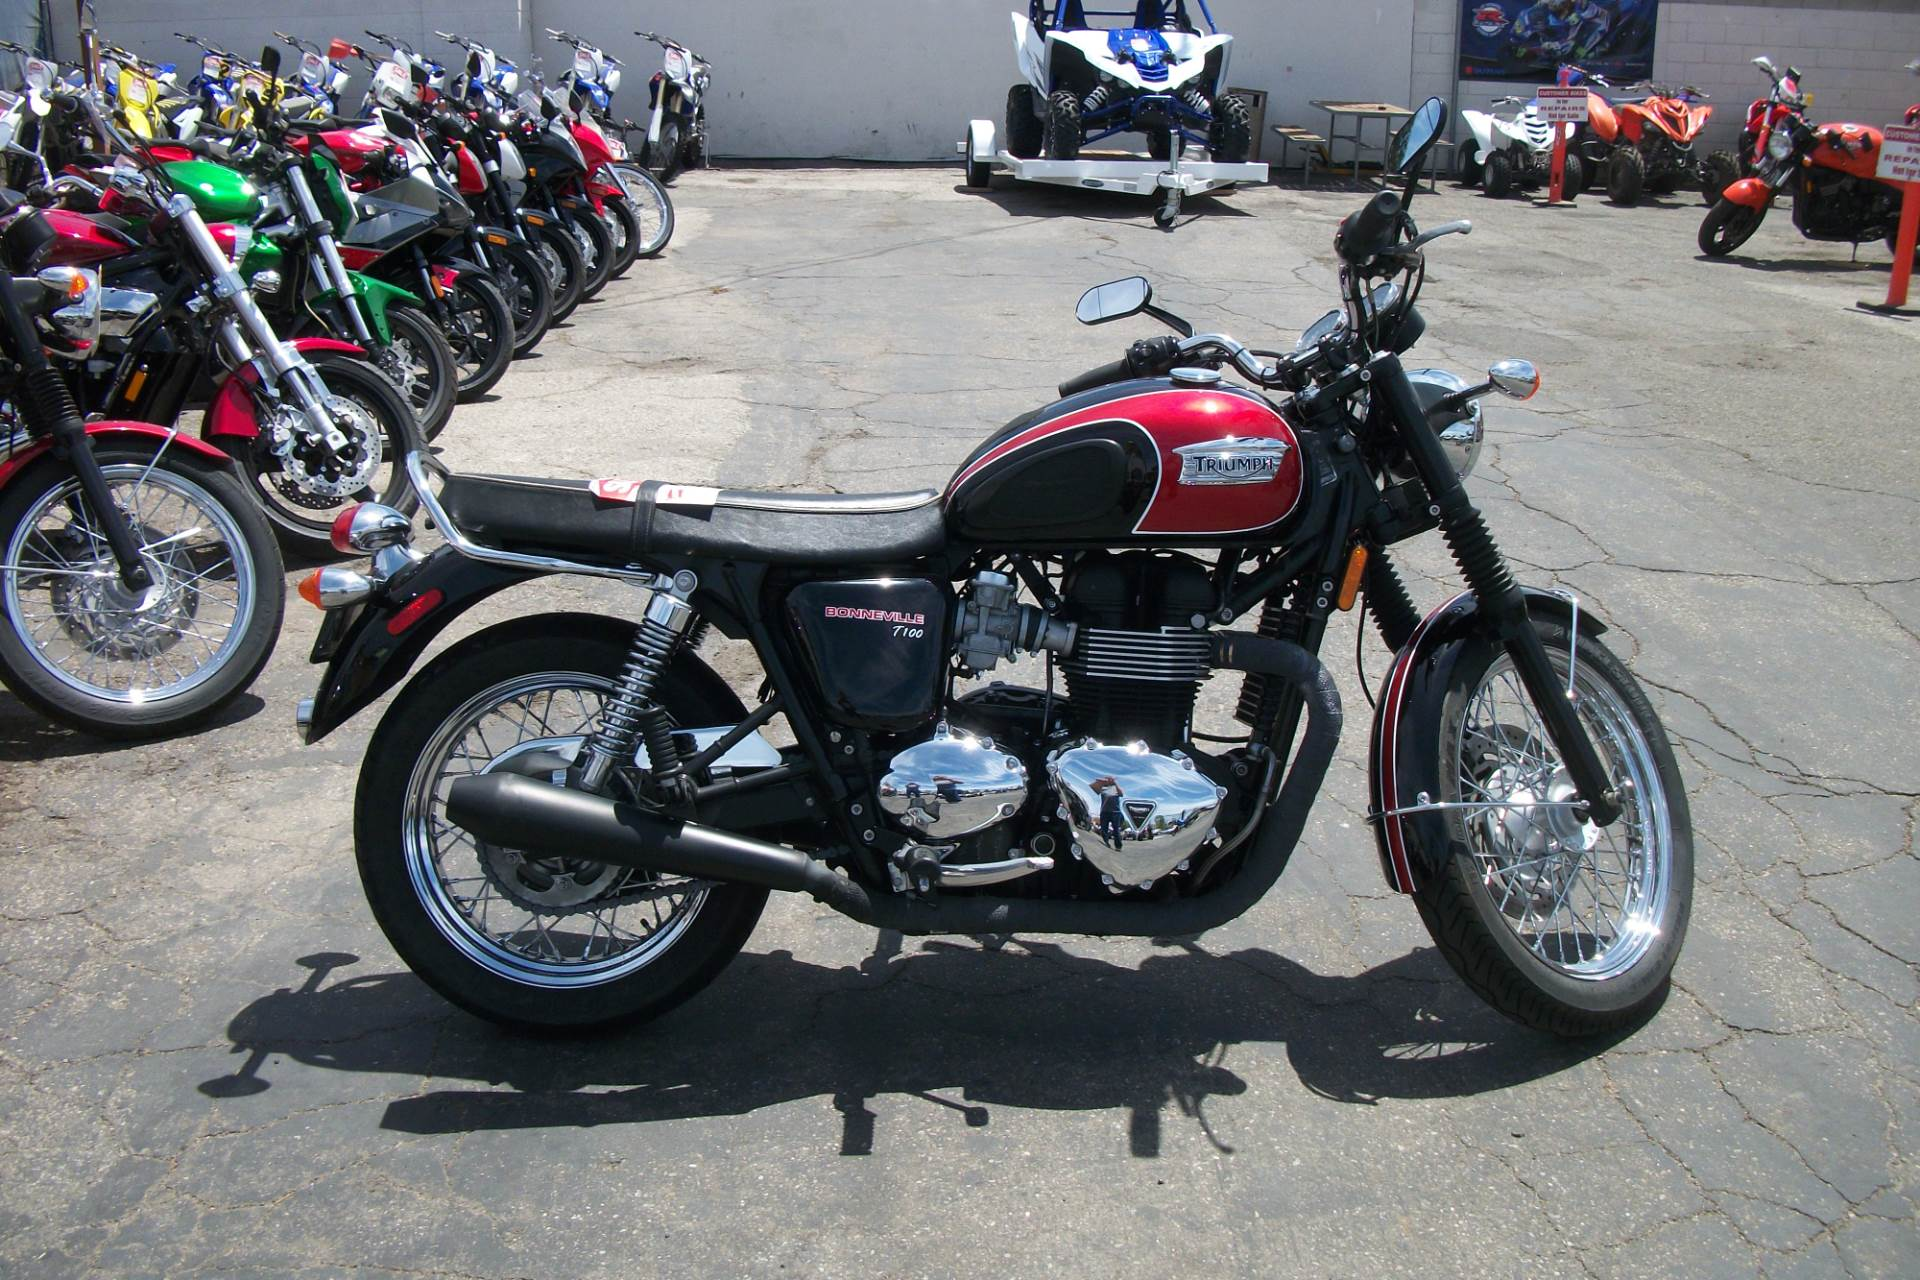 Used 2014 Triumph Bonneville T100 Motorcycles in Simi Valley, CA